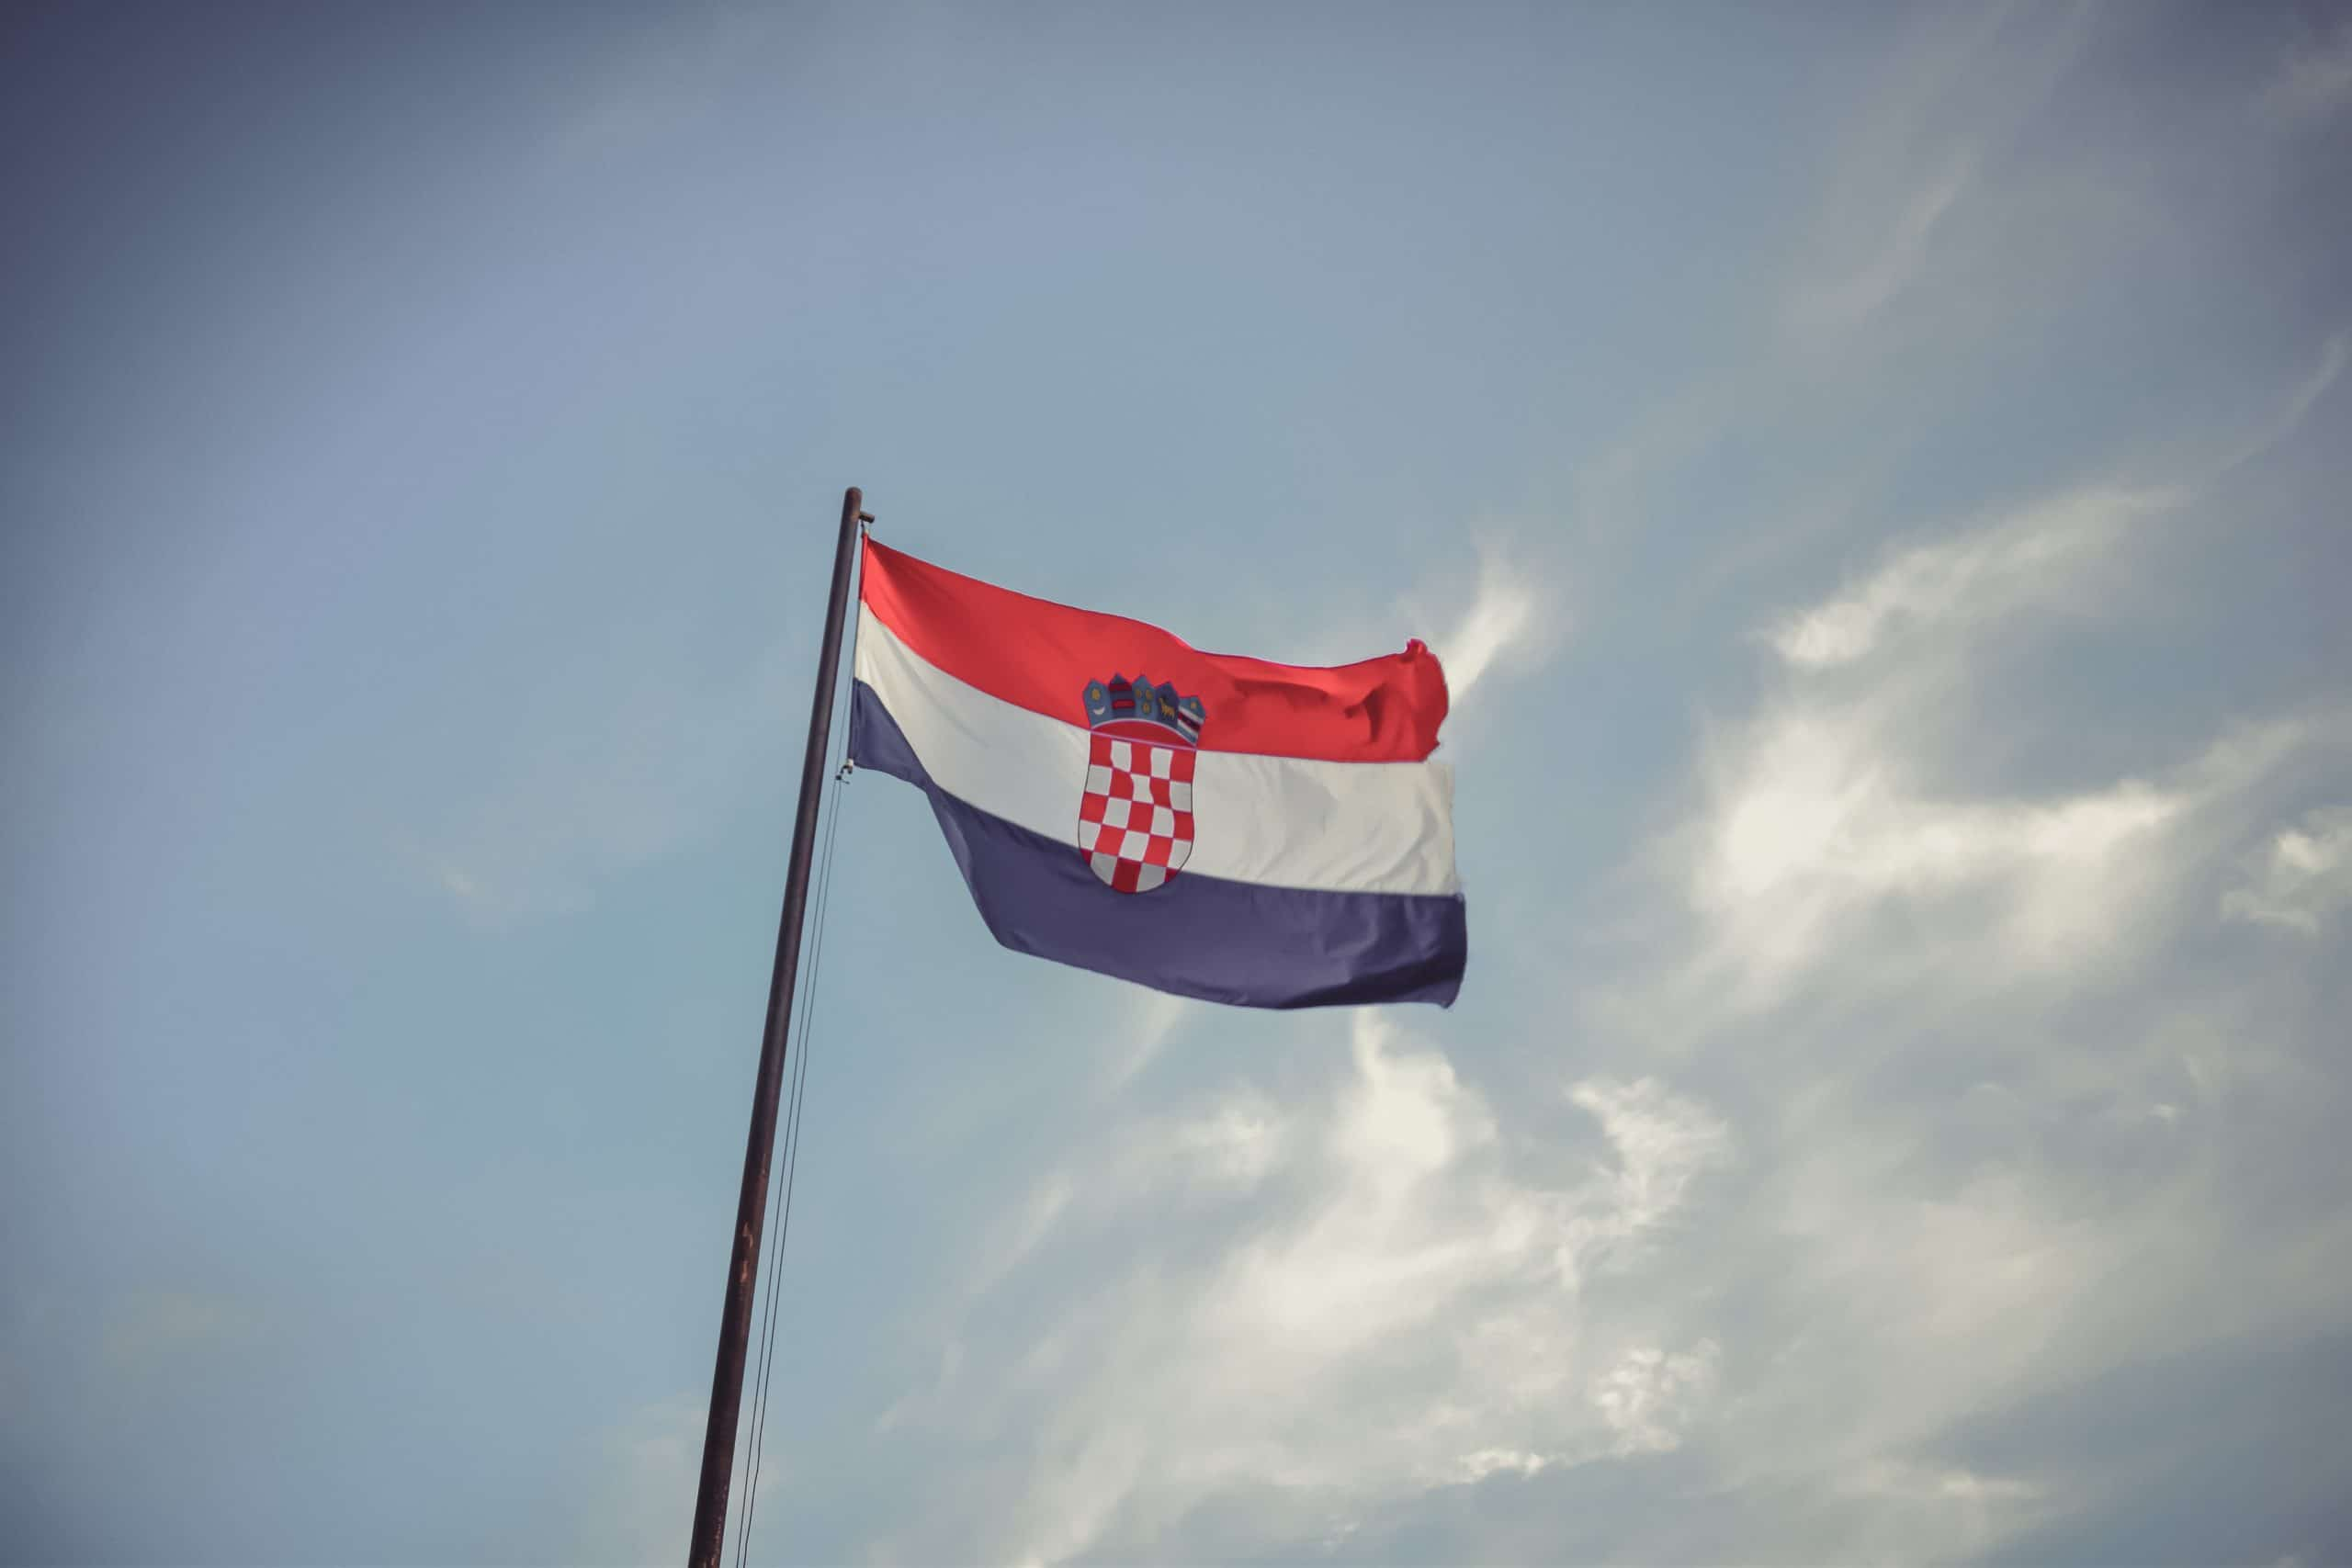 RREUSE welcomes the Croatian Presidency of the Council of the European Union